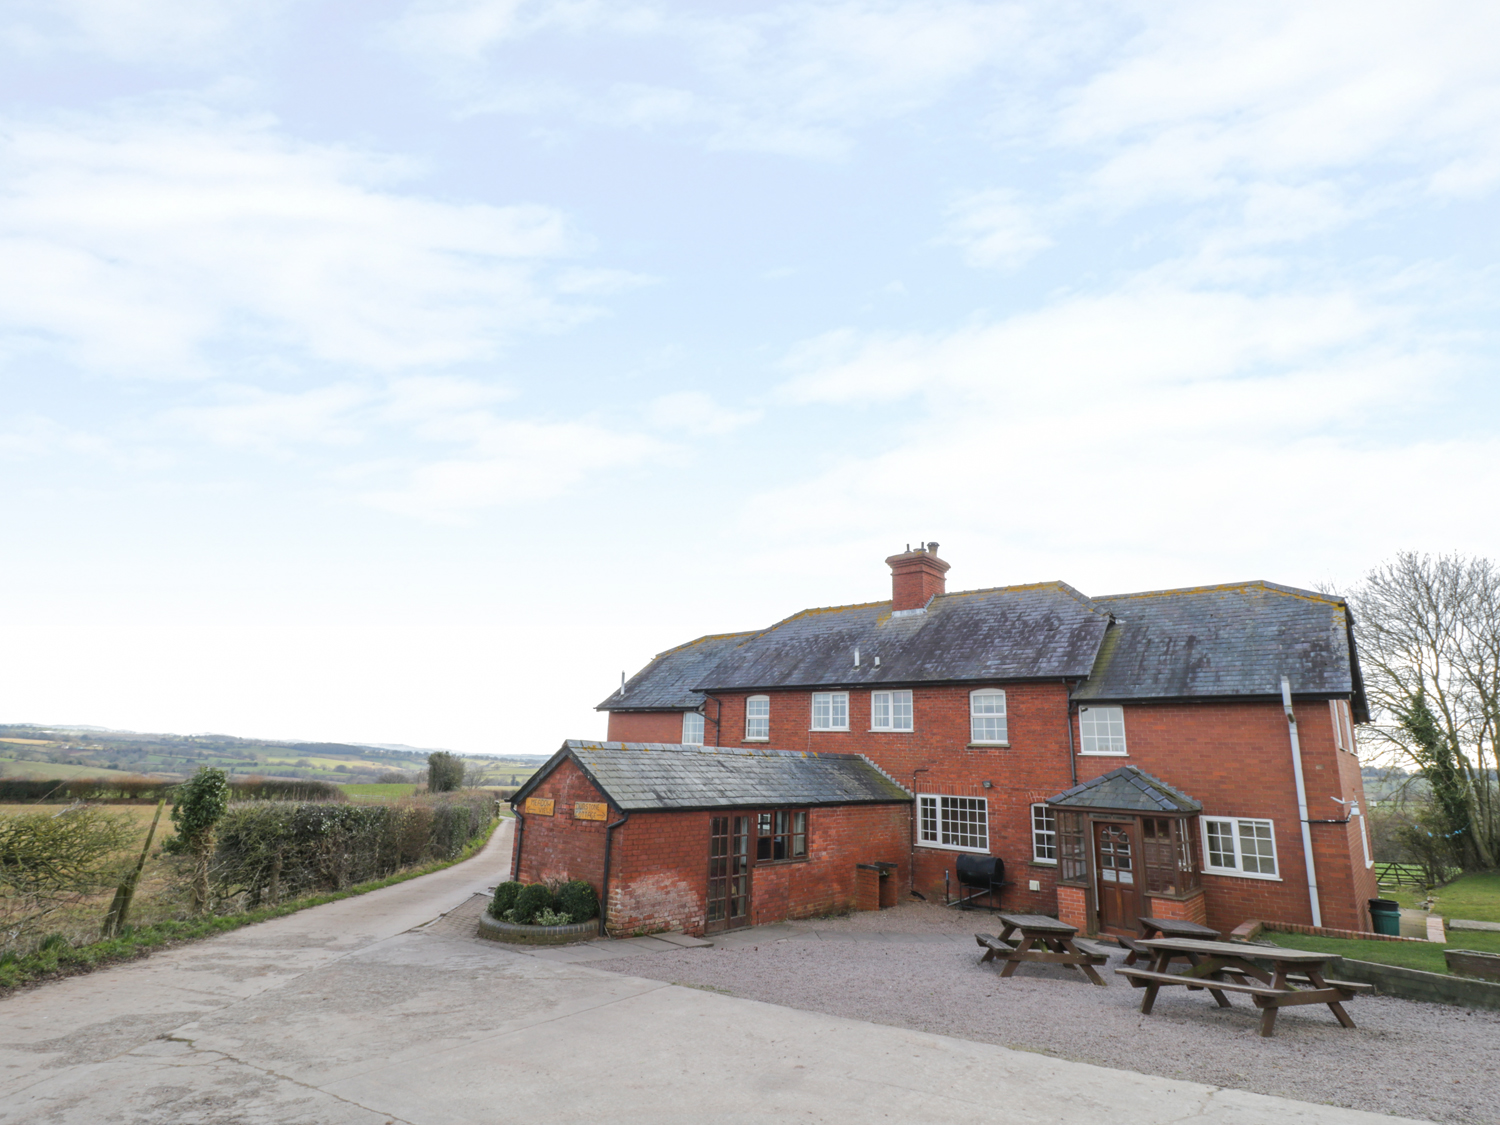 9 bedroom Cottage for rent in Hereford